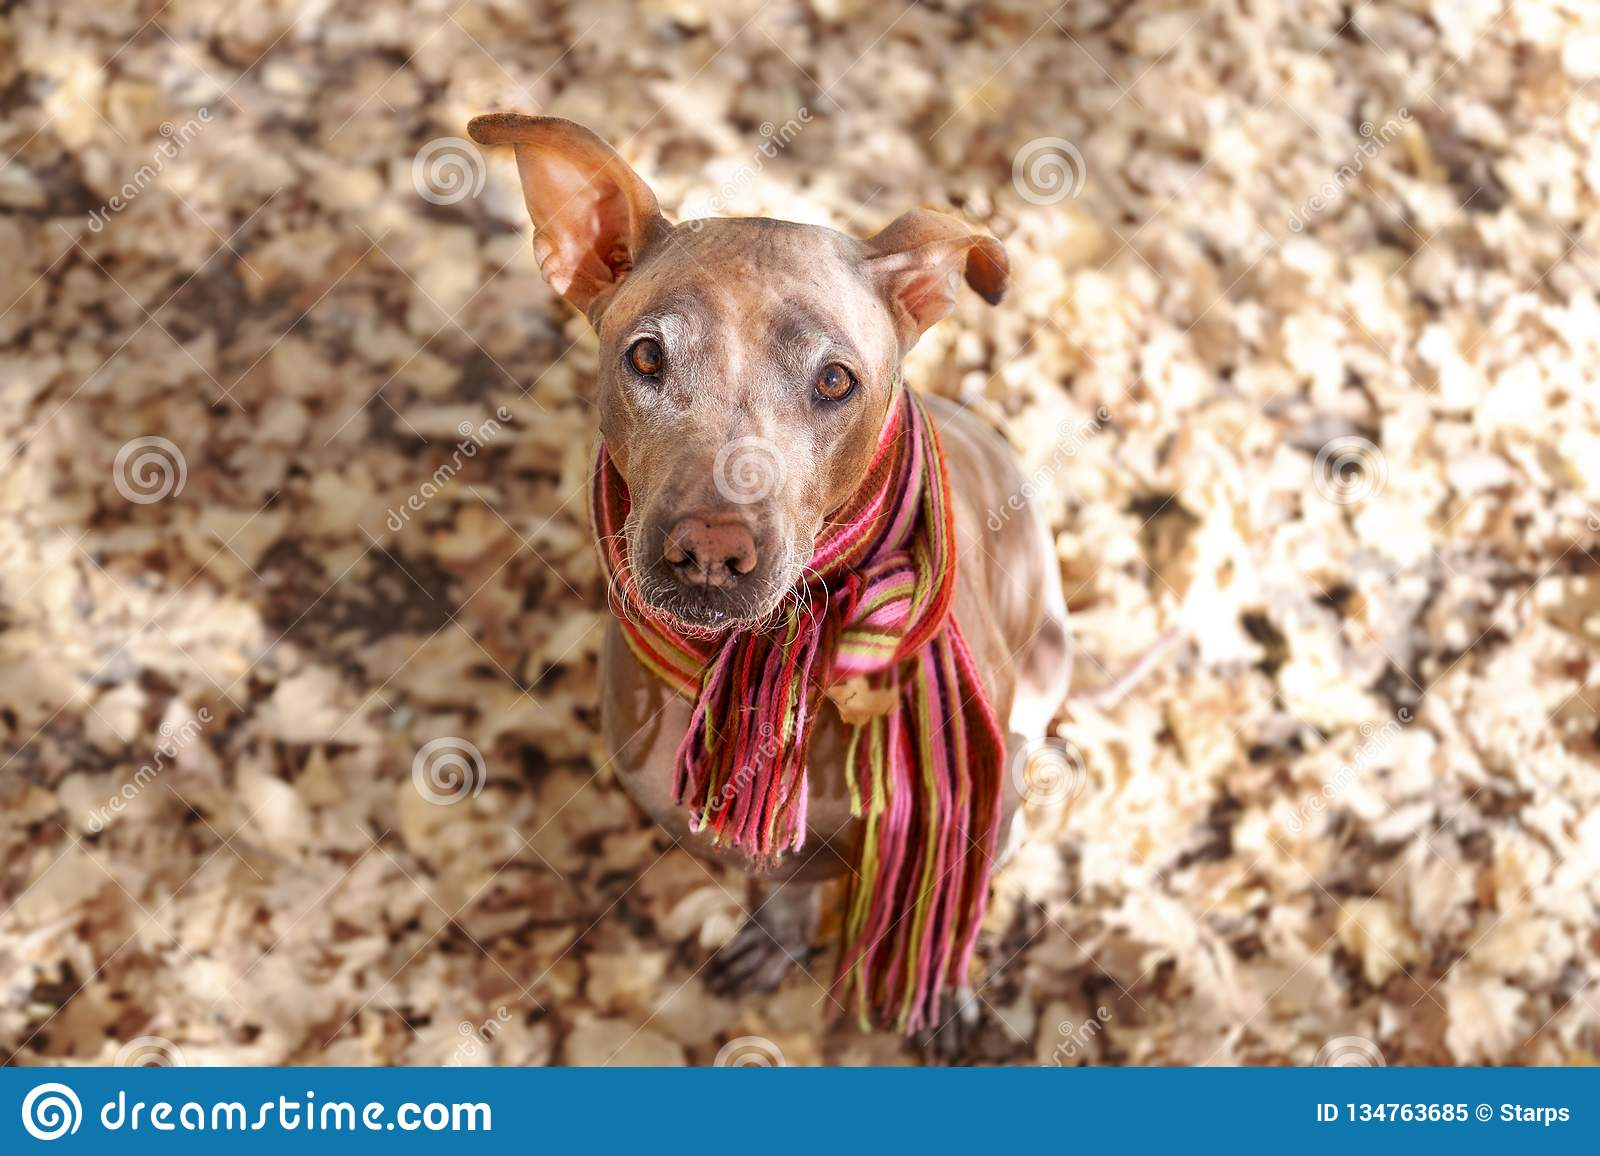 Pretty pale dog in bright stripped scarf on the autumn/fall background.